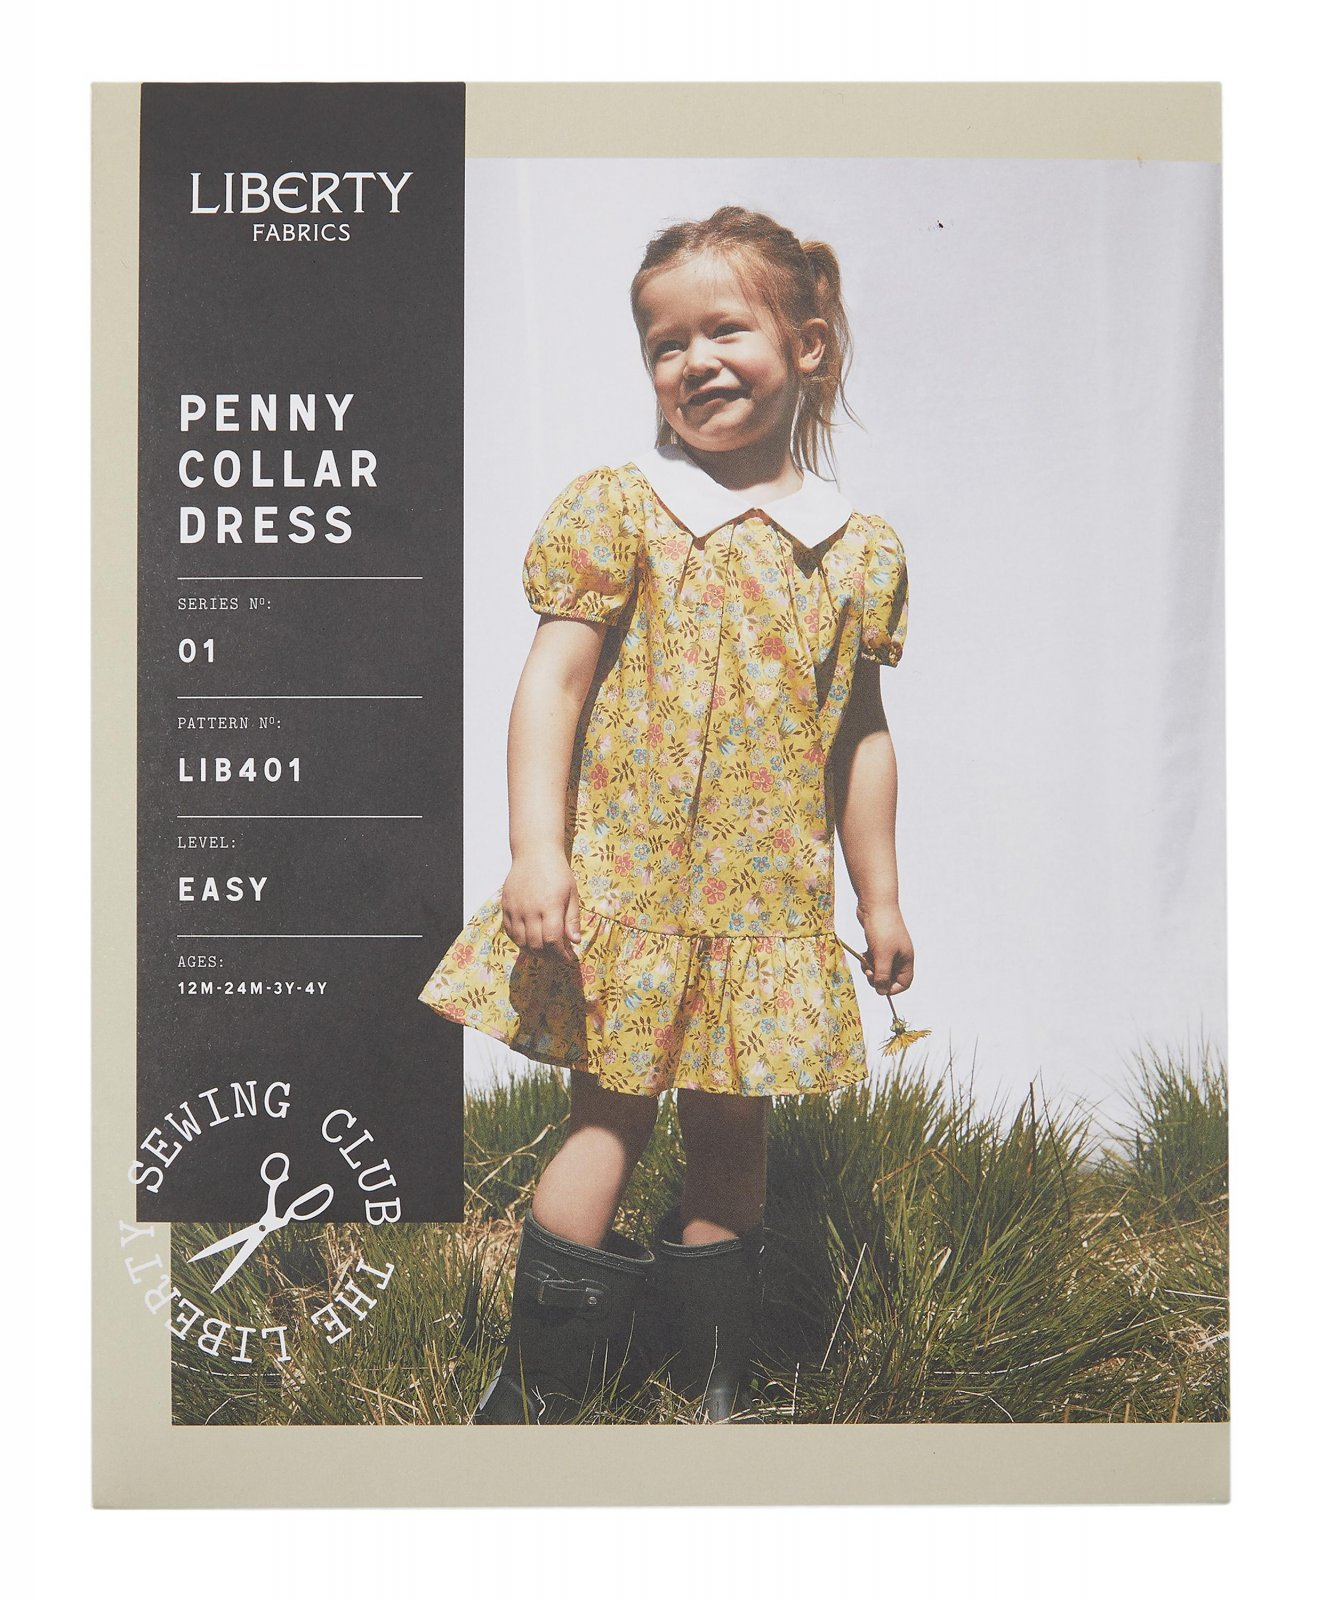 Liberty Fabrics Penny Collar Dress